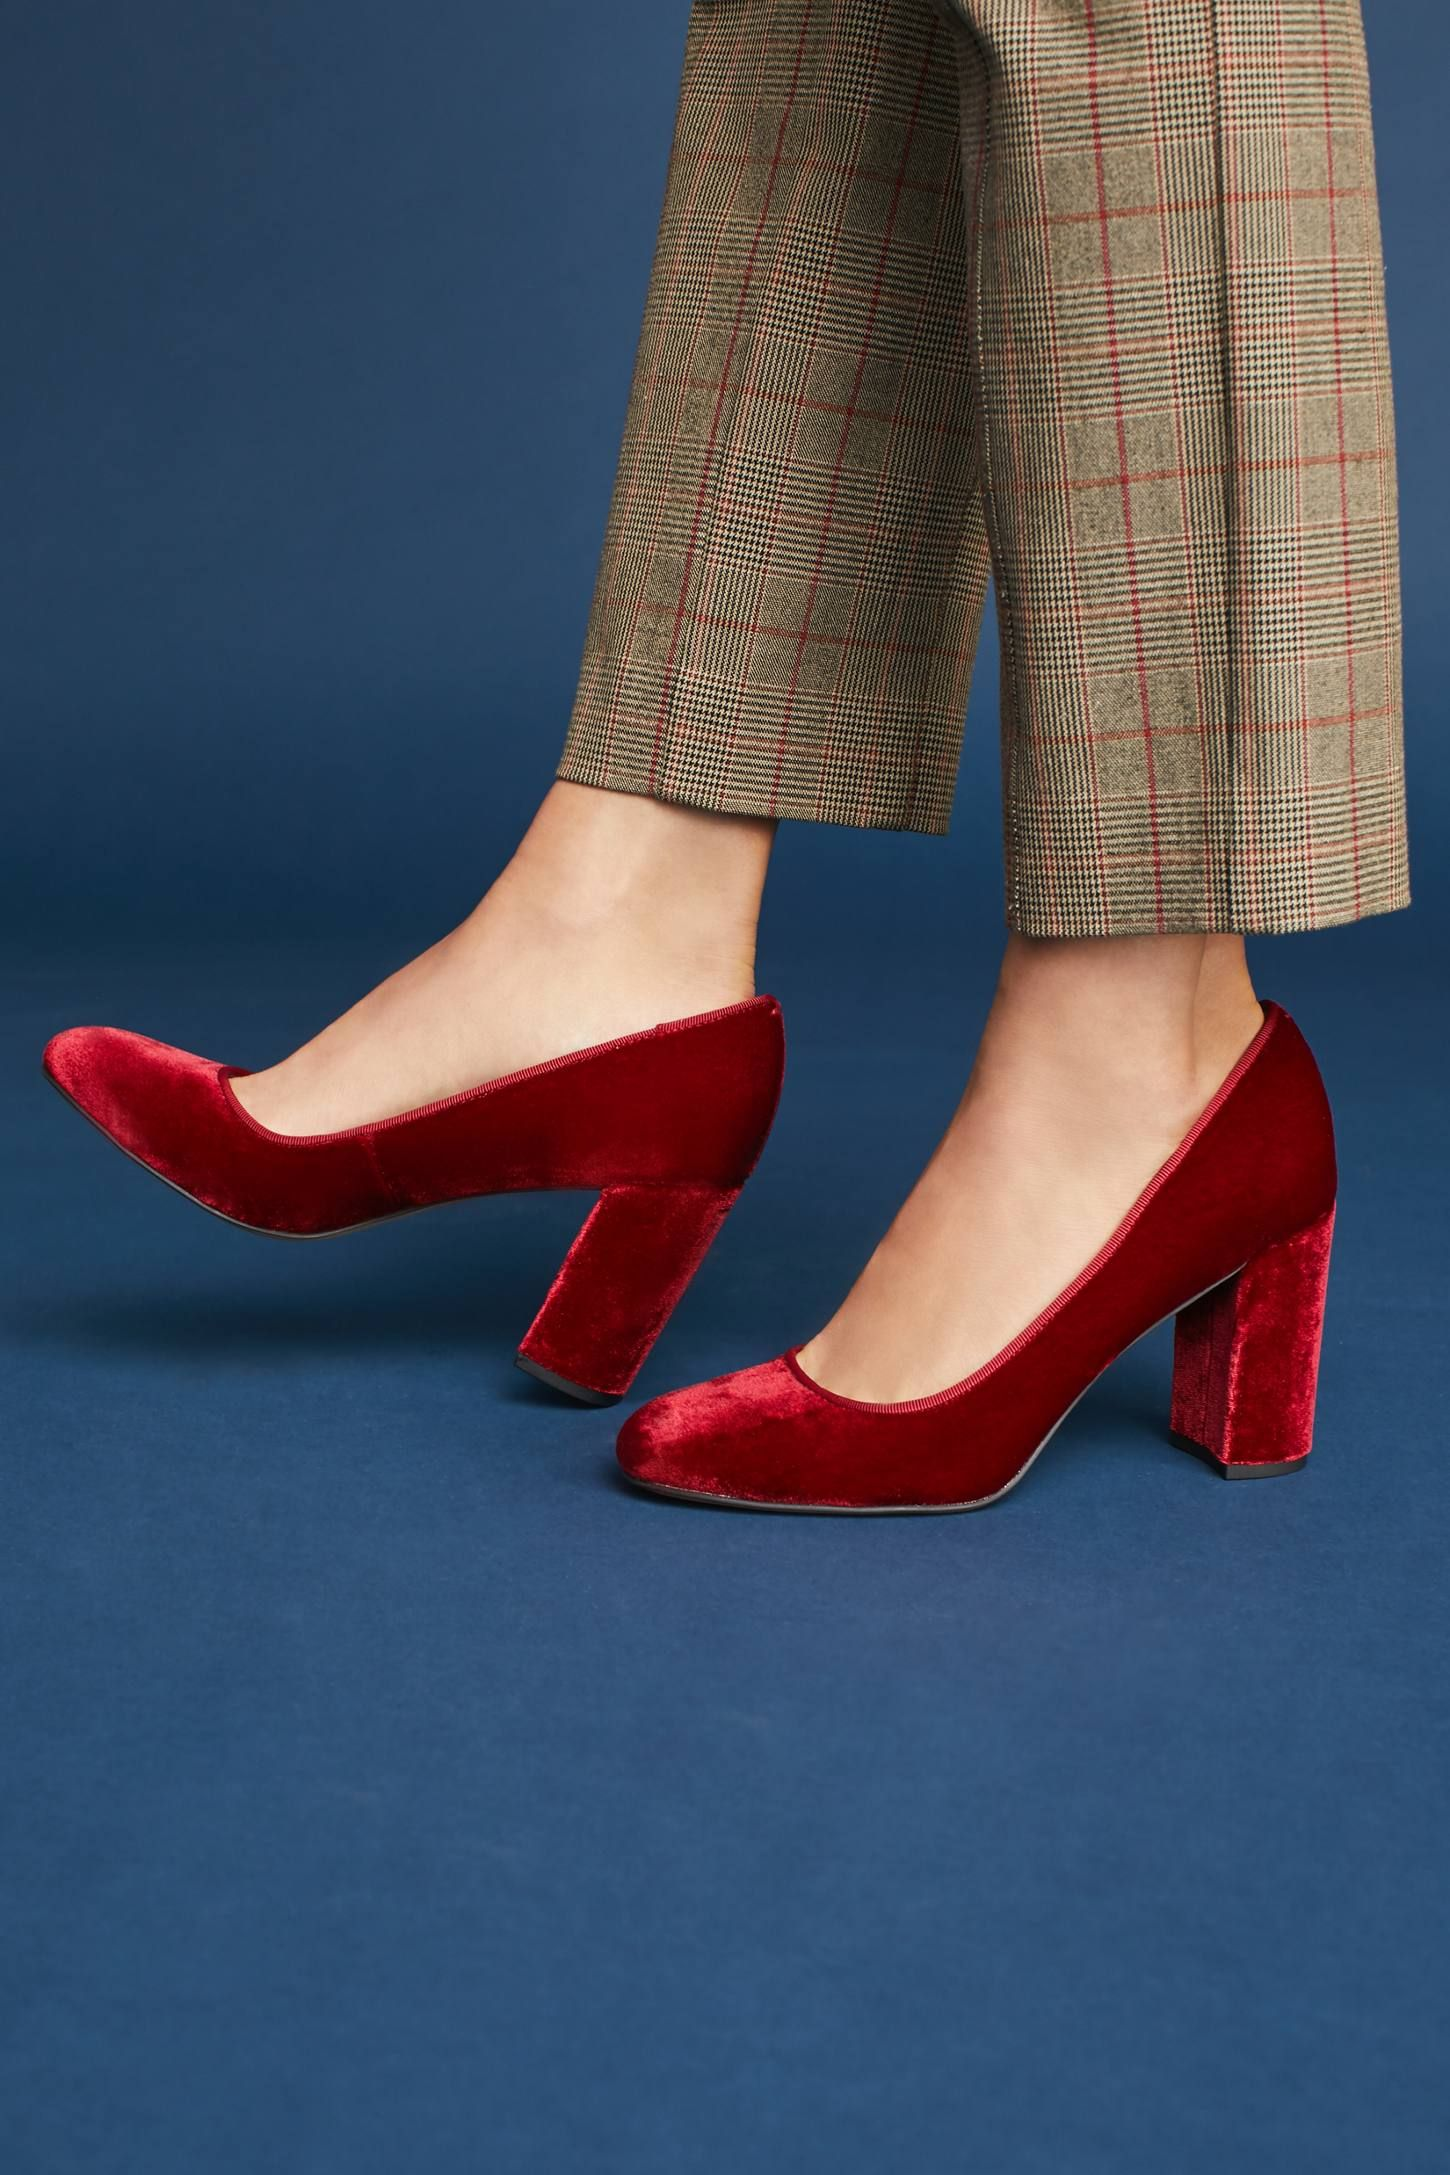 c7896a4a42 Shop the Sarto by Franco Sarto Aziza Velvet Heels and more Anthropologie at  Anthropologie today. Read customer reviews, discover product details and  more.